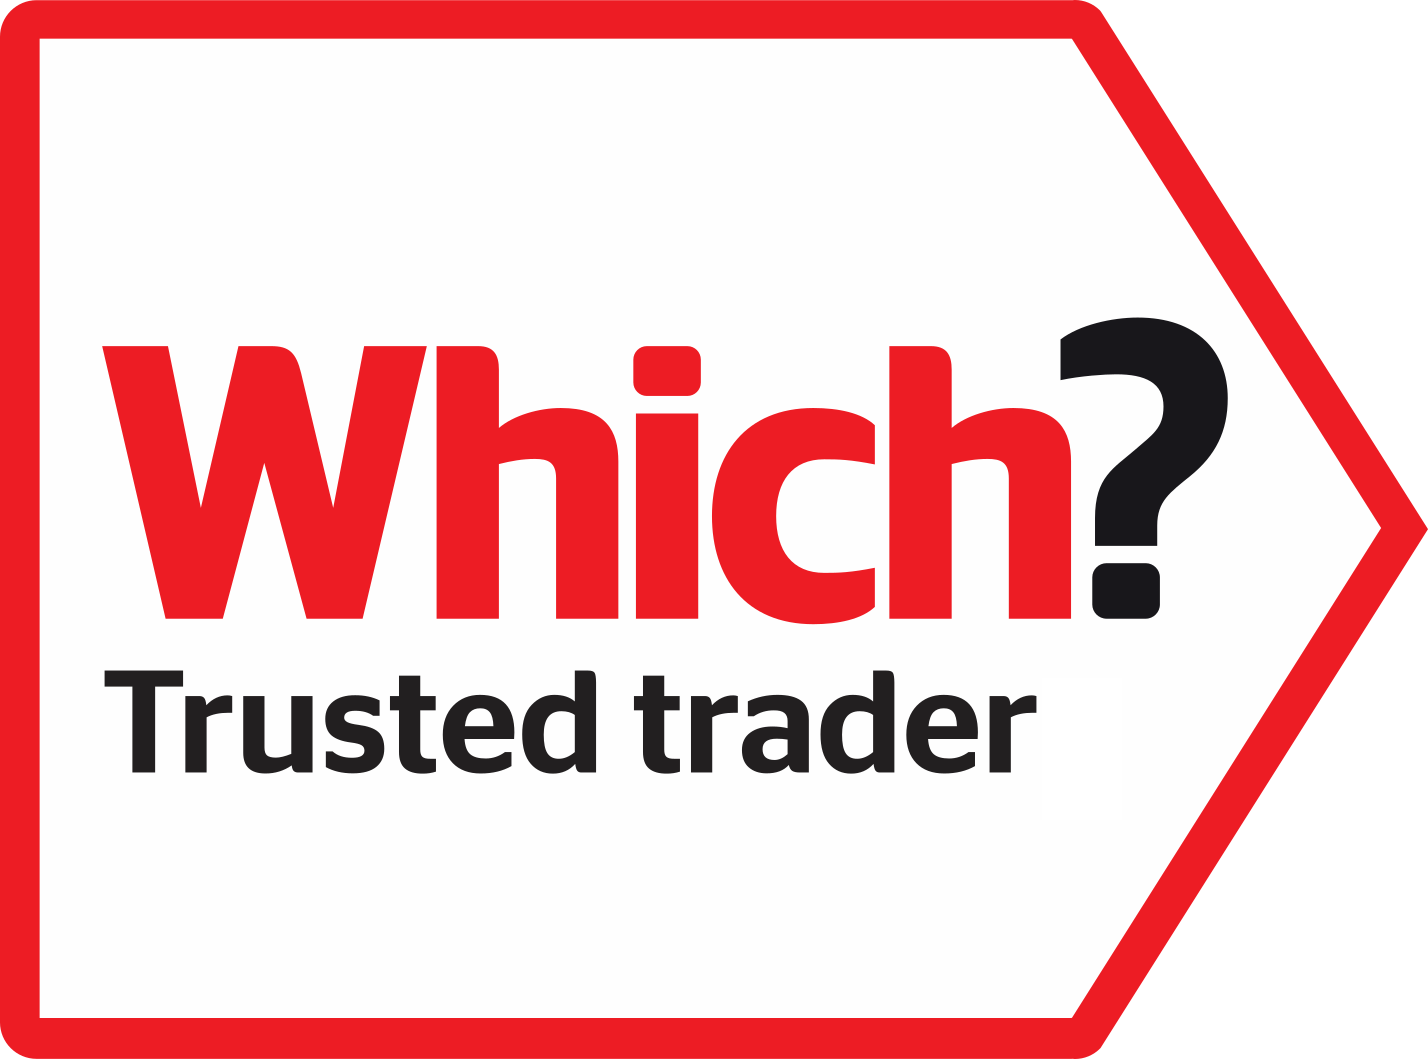 trusted-trader